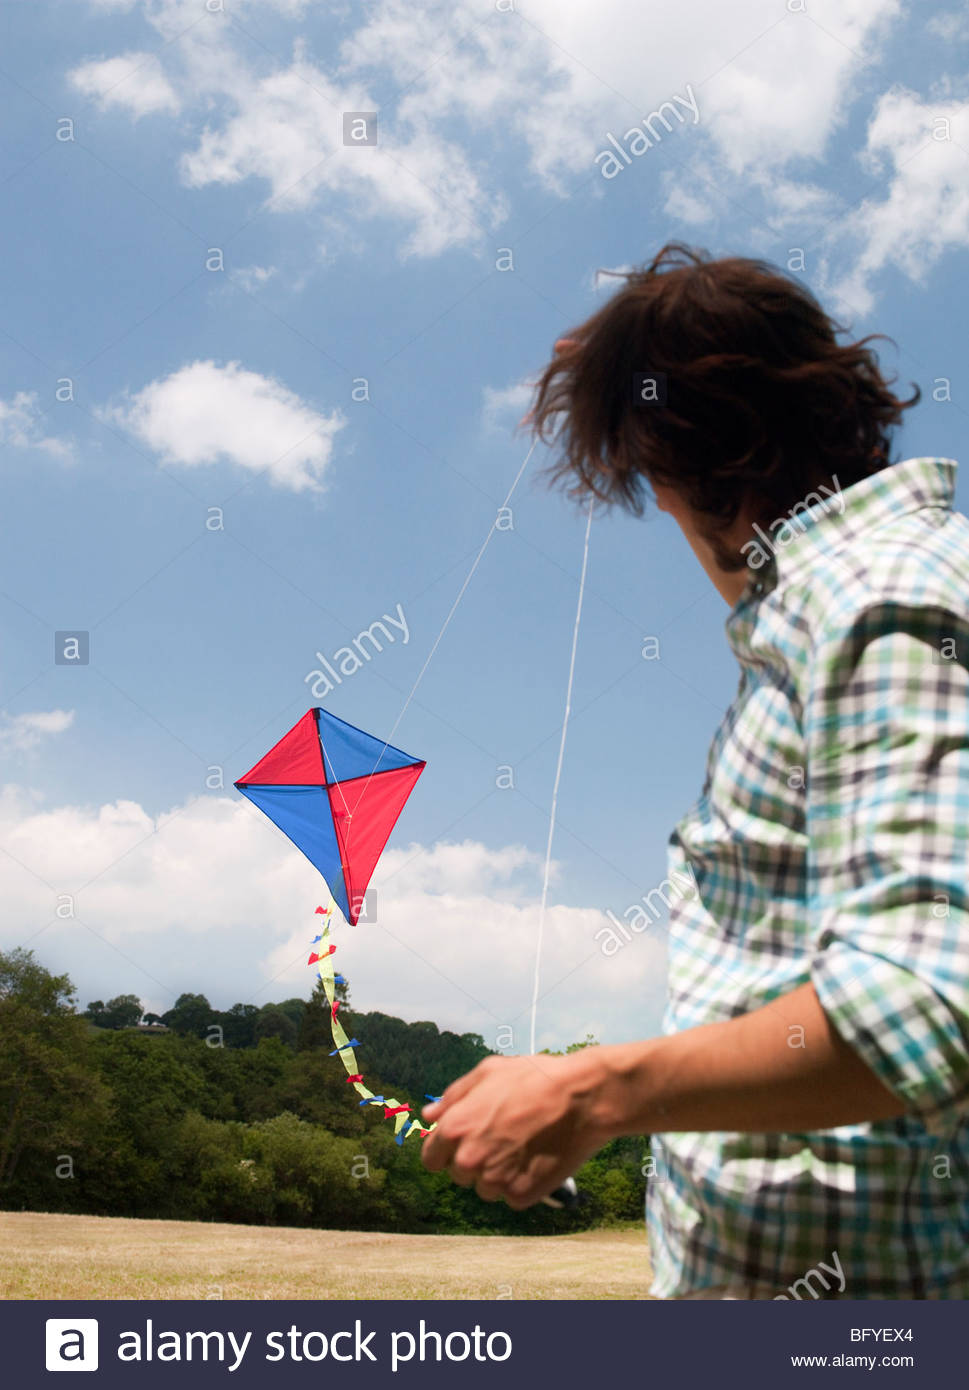 man flying kite - Stock Image